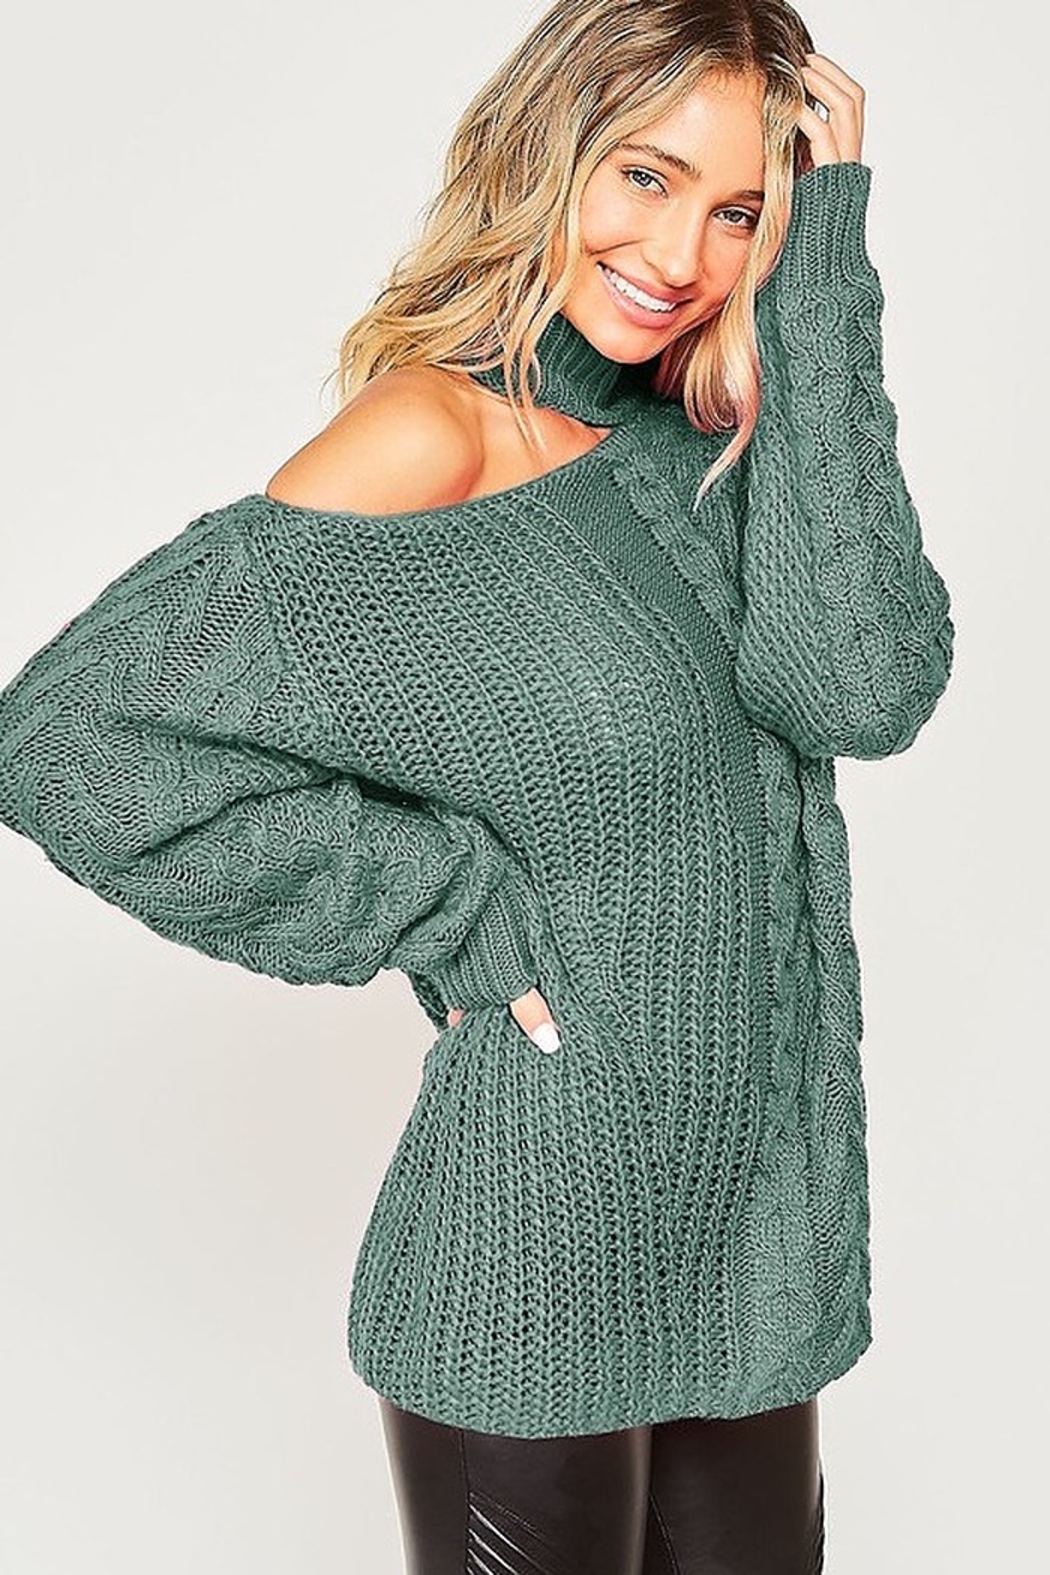 Peach Love California One Shoulder Chunky Cable Knit Sweater - Front Cropped Image